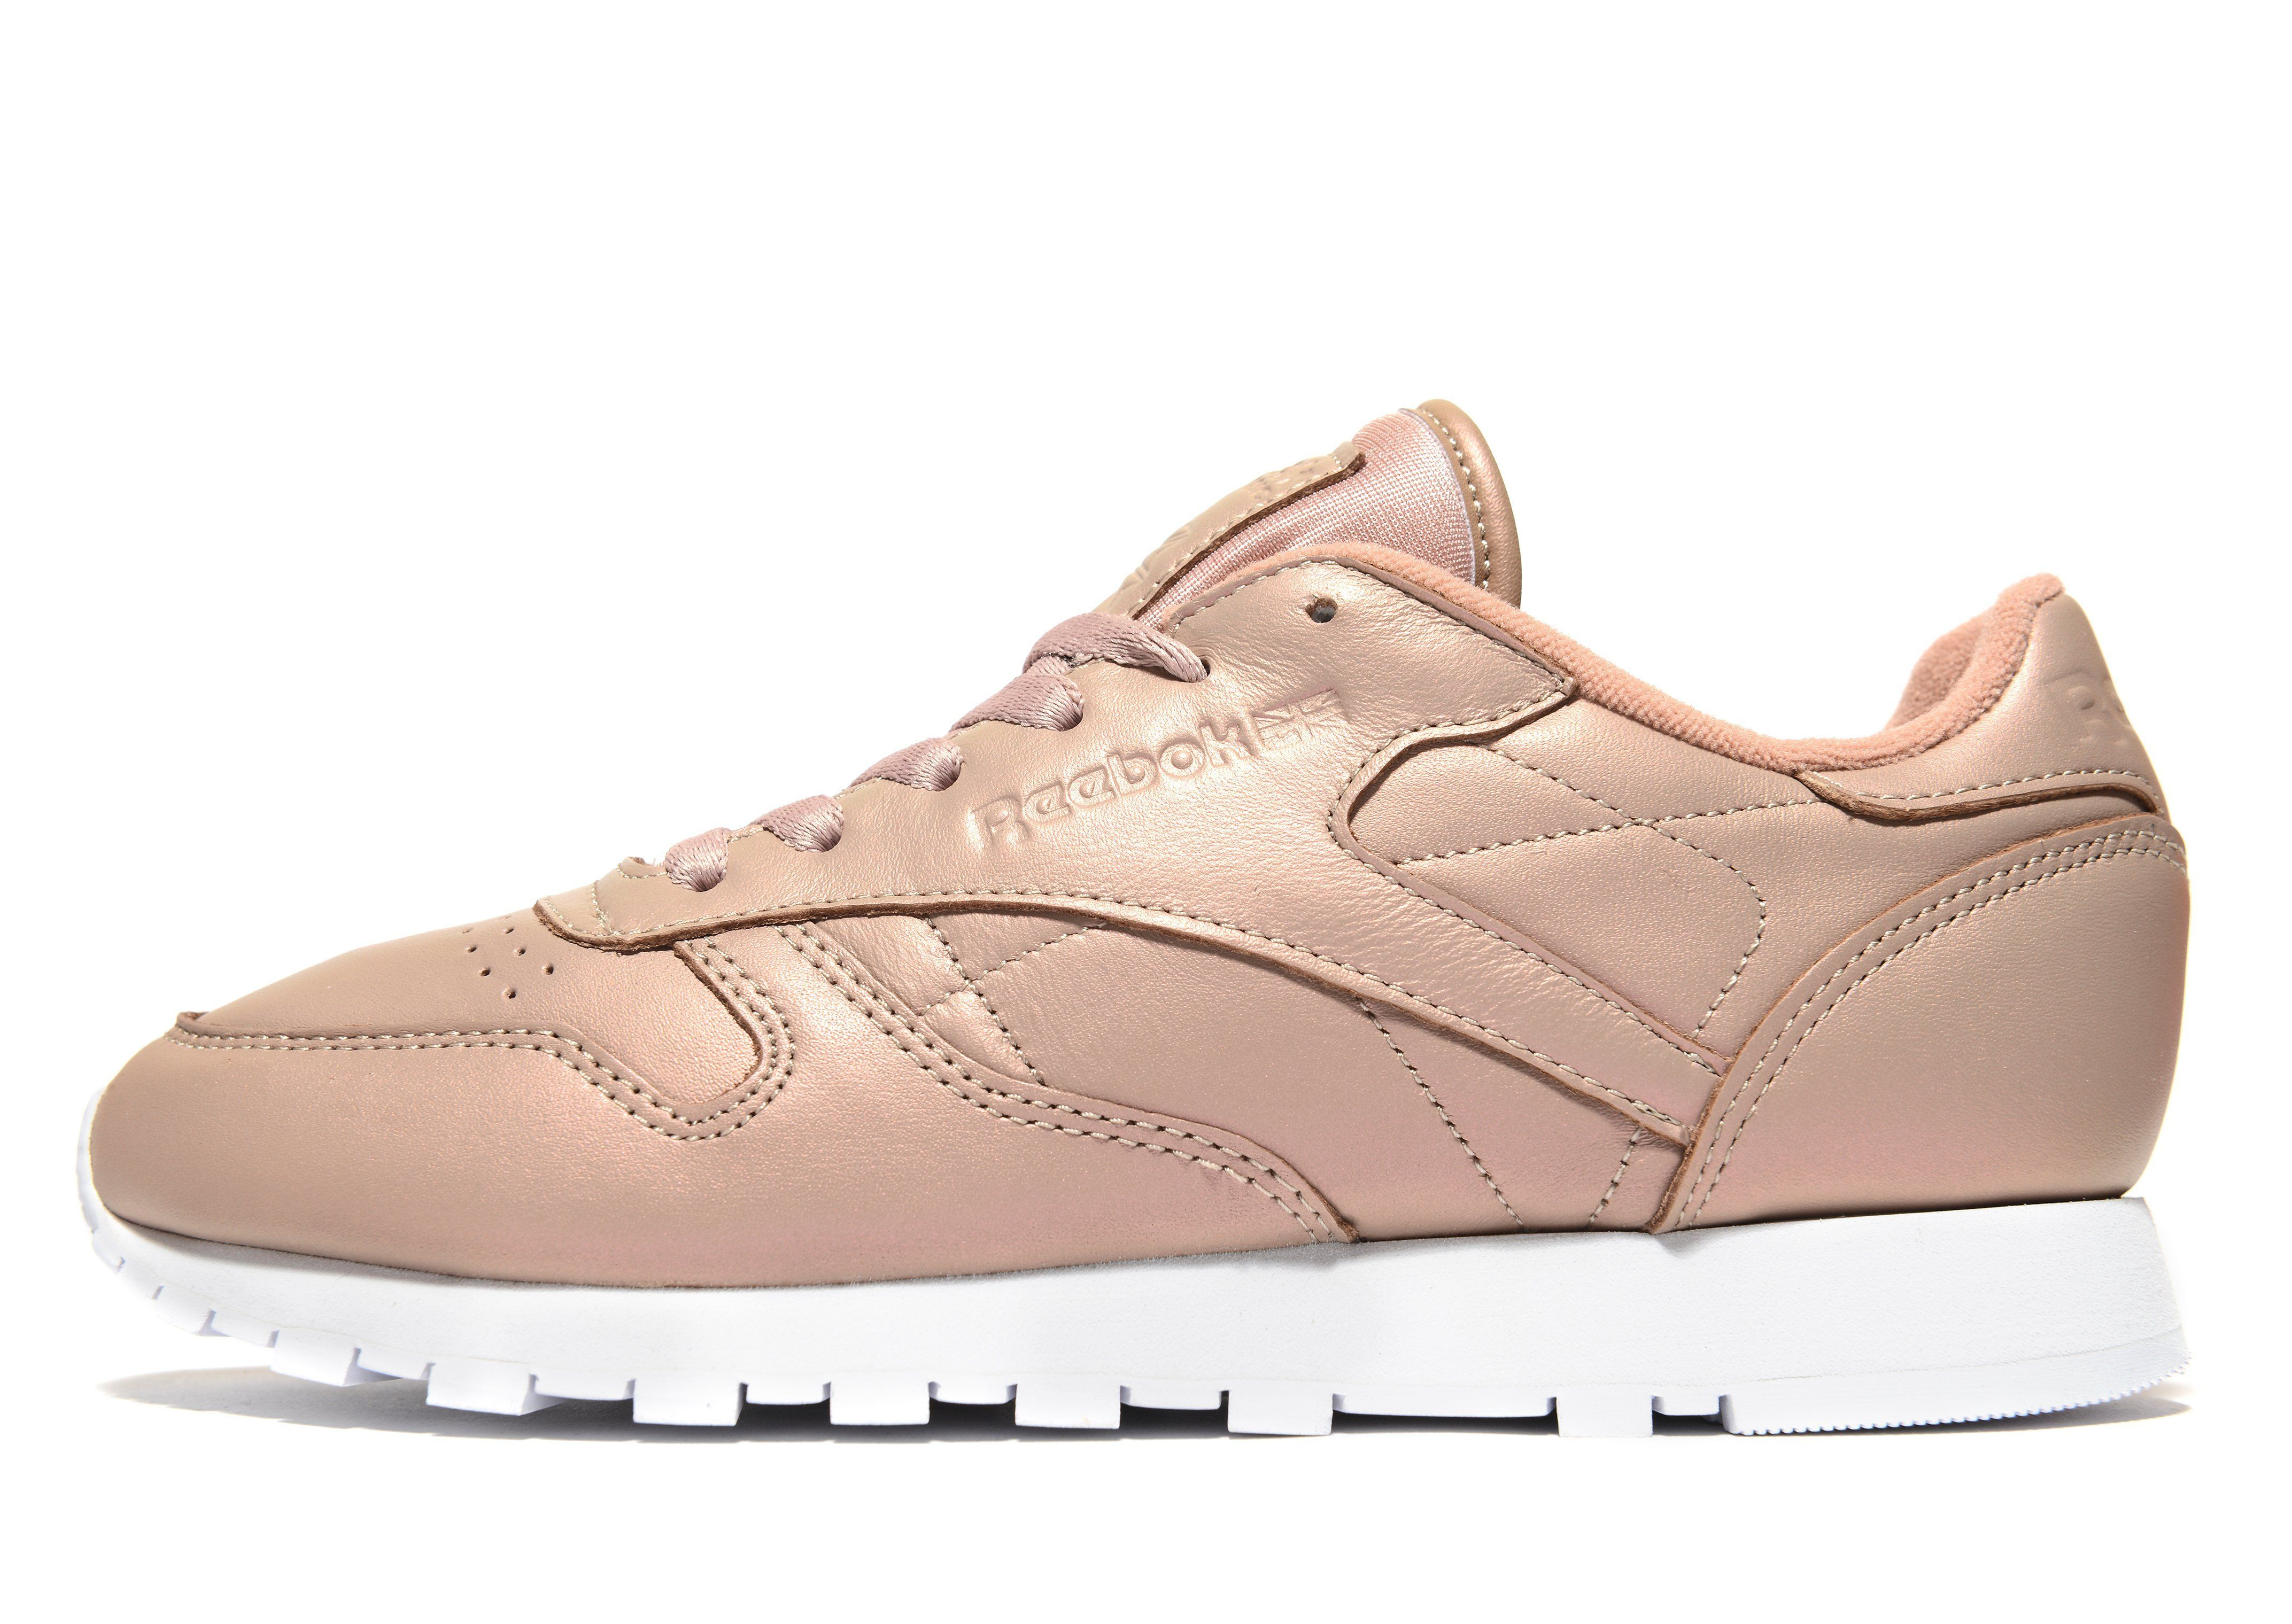 Reebok Classic Leather Pearlised Women's Shop online for